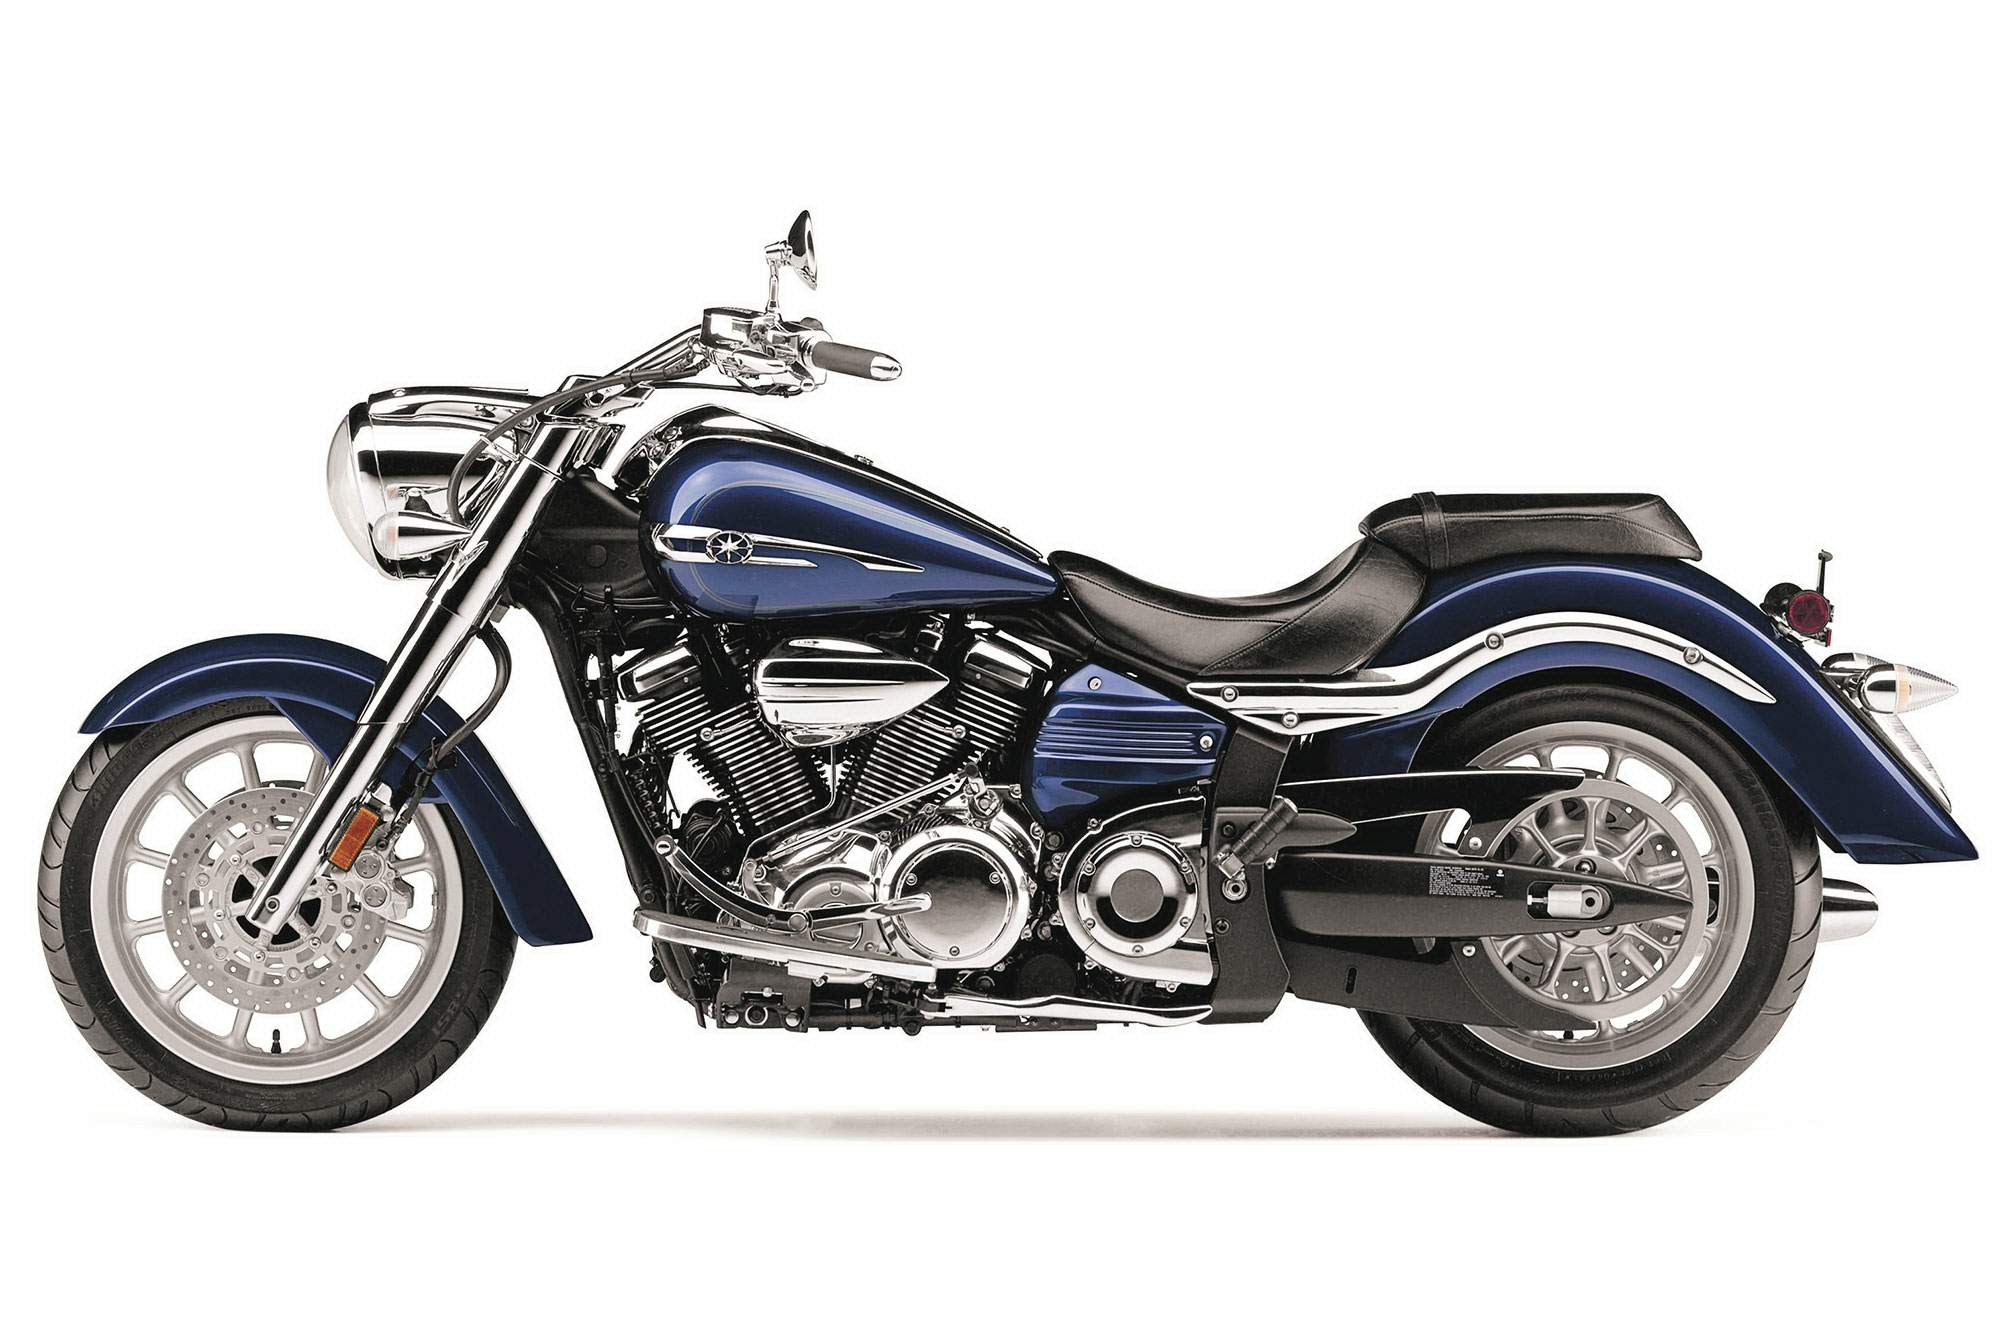 Мотоцикл Yamaha Star Roadliner S 2014